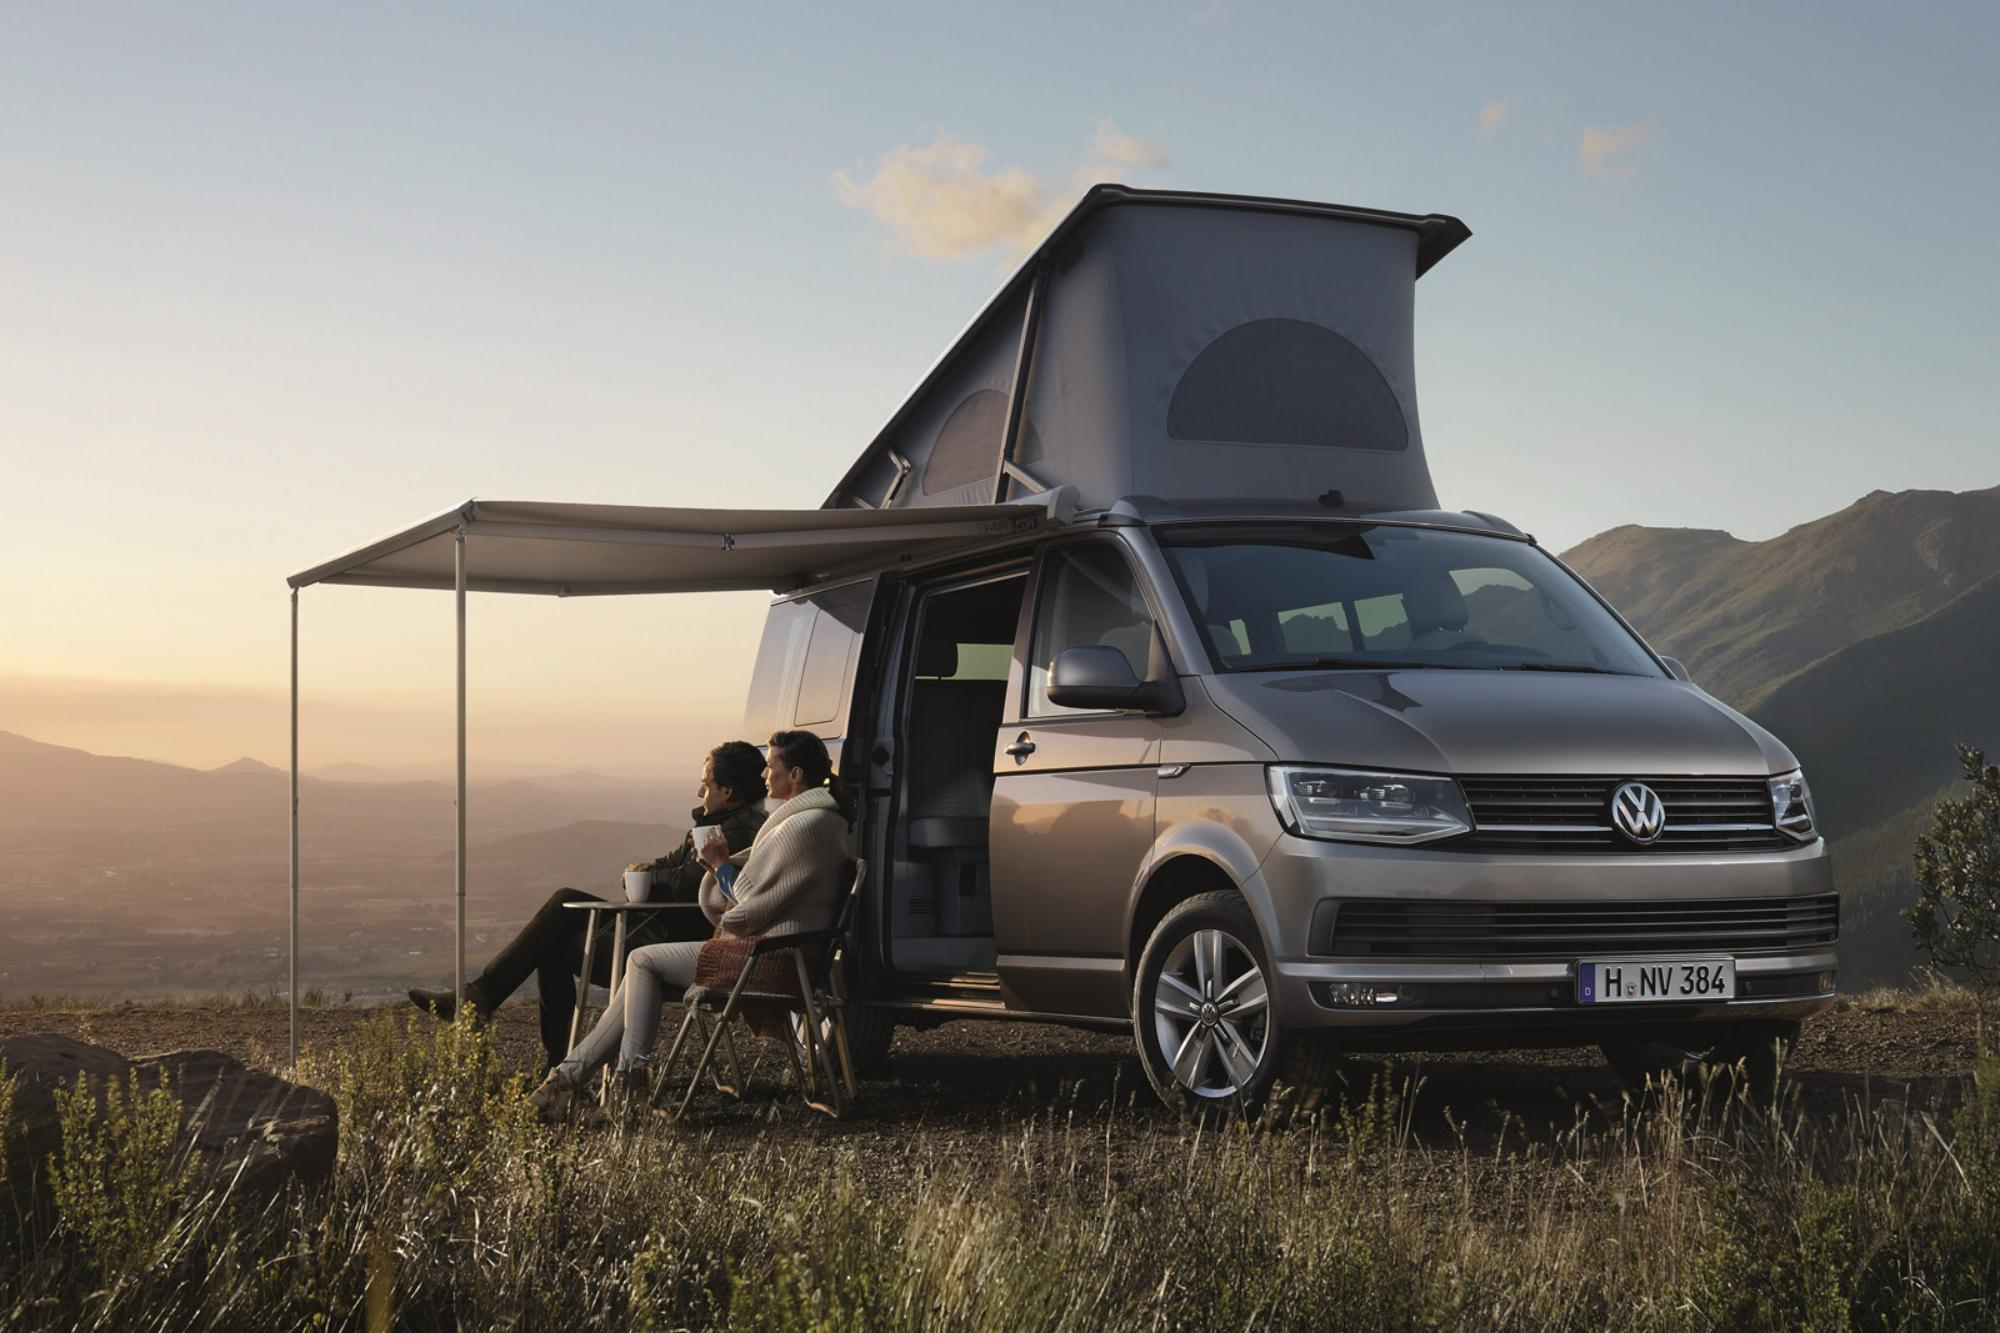 Campervan Hire in South Yorkshire | Motorhome Rental in South Yorkshire